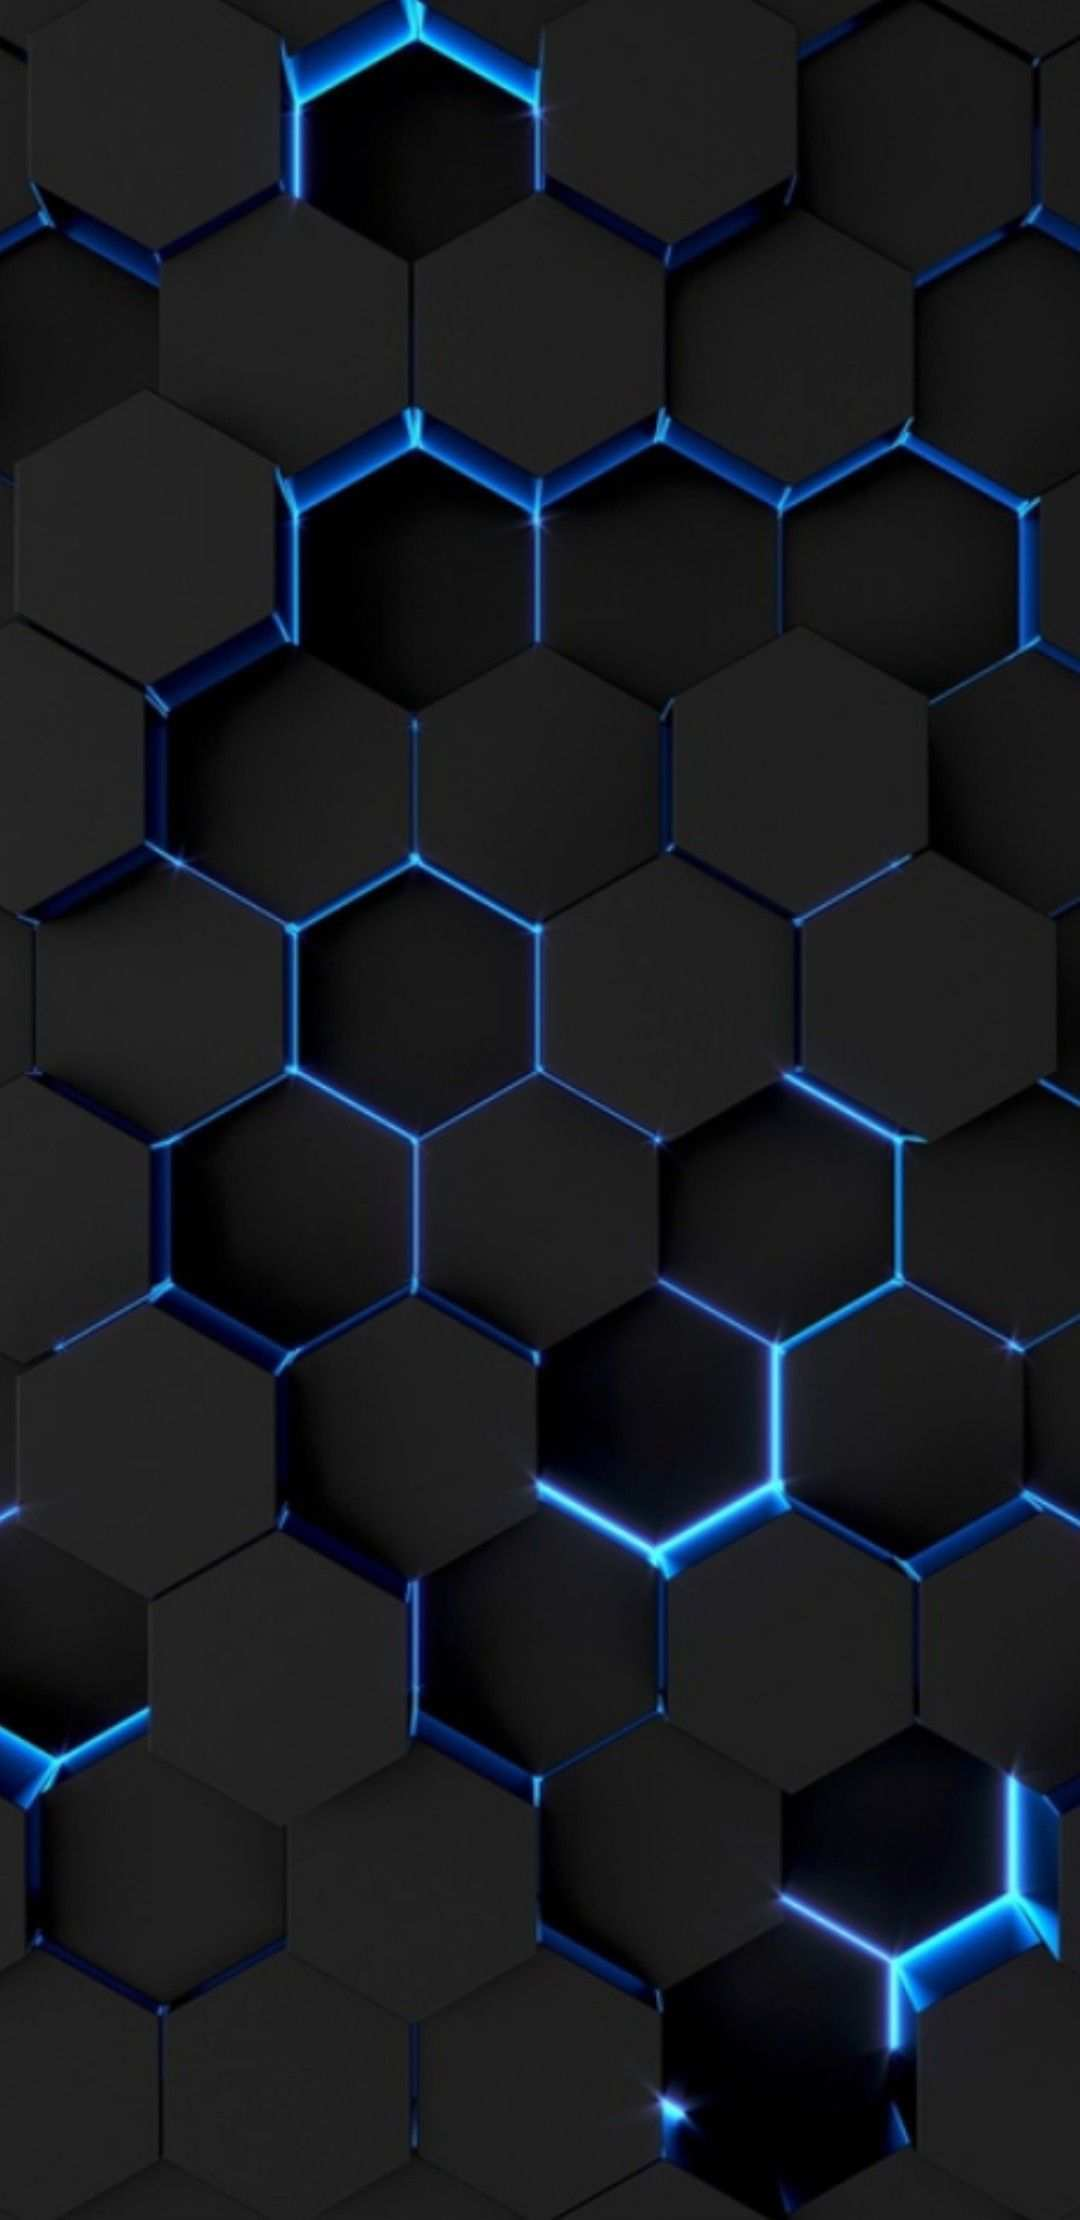 Black Surface Color Honeycomb Formation With A Slim Light Blue Neon L E D Outline Phone Wallpaper Design Black And Blue Wallpaper Graphic Wallpaper